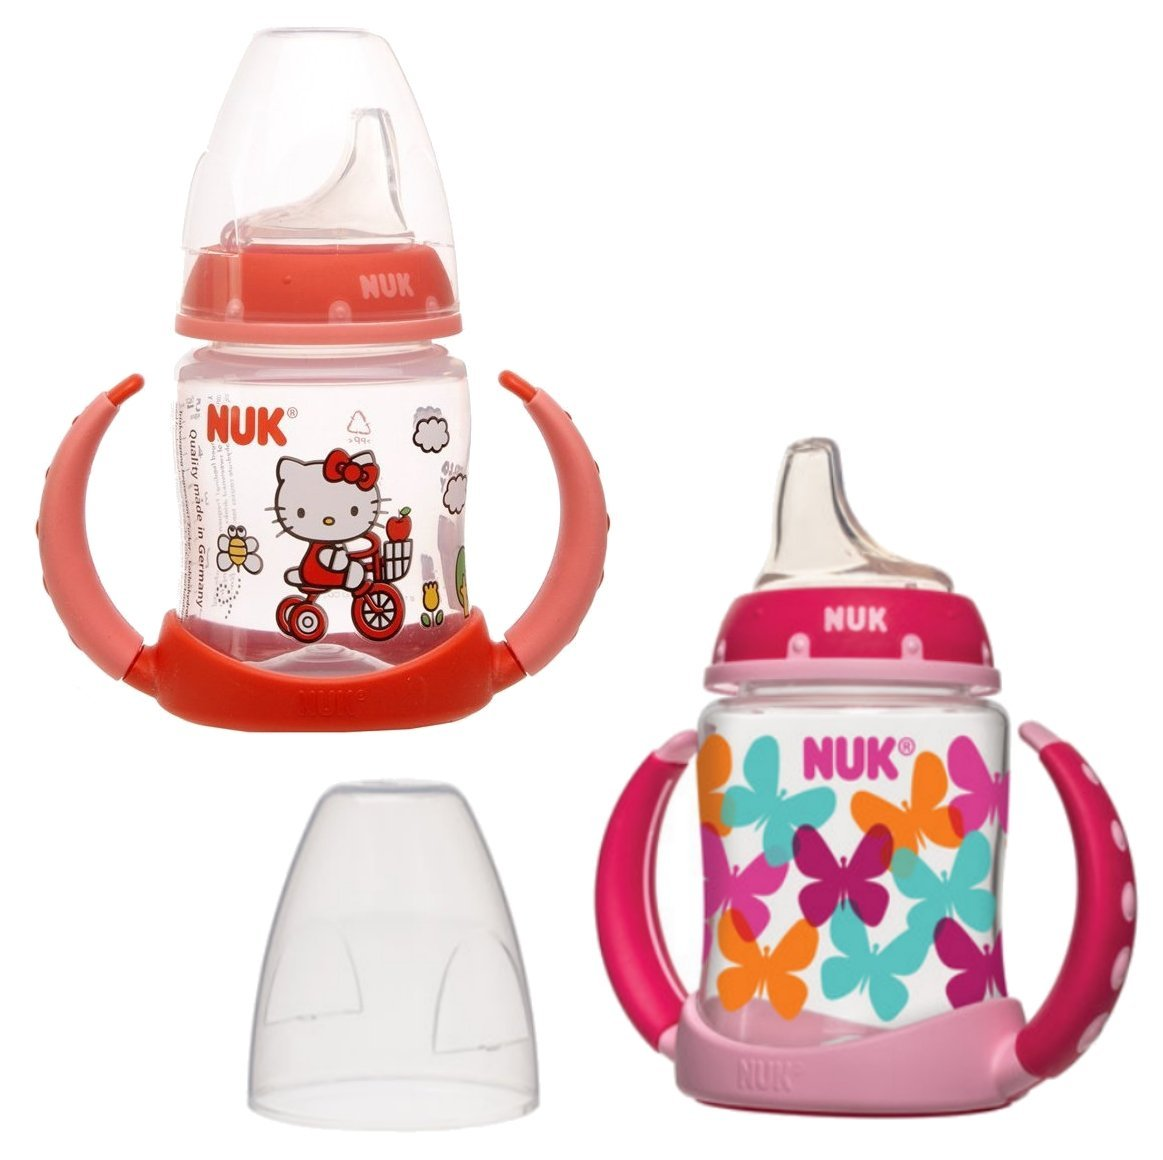 NUK 2 Count Pretty In Pink Leaner Cup, 5 oz, Baby Talk/Hello Kitty